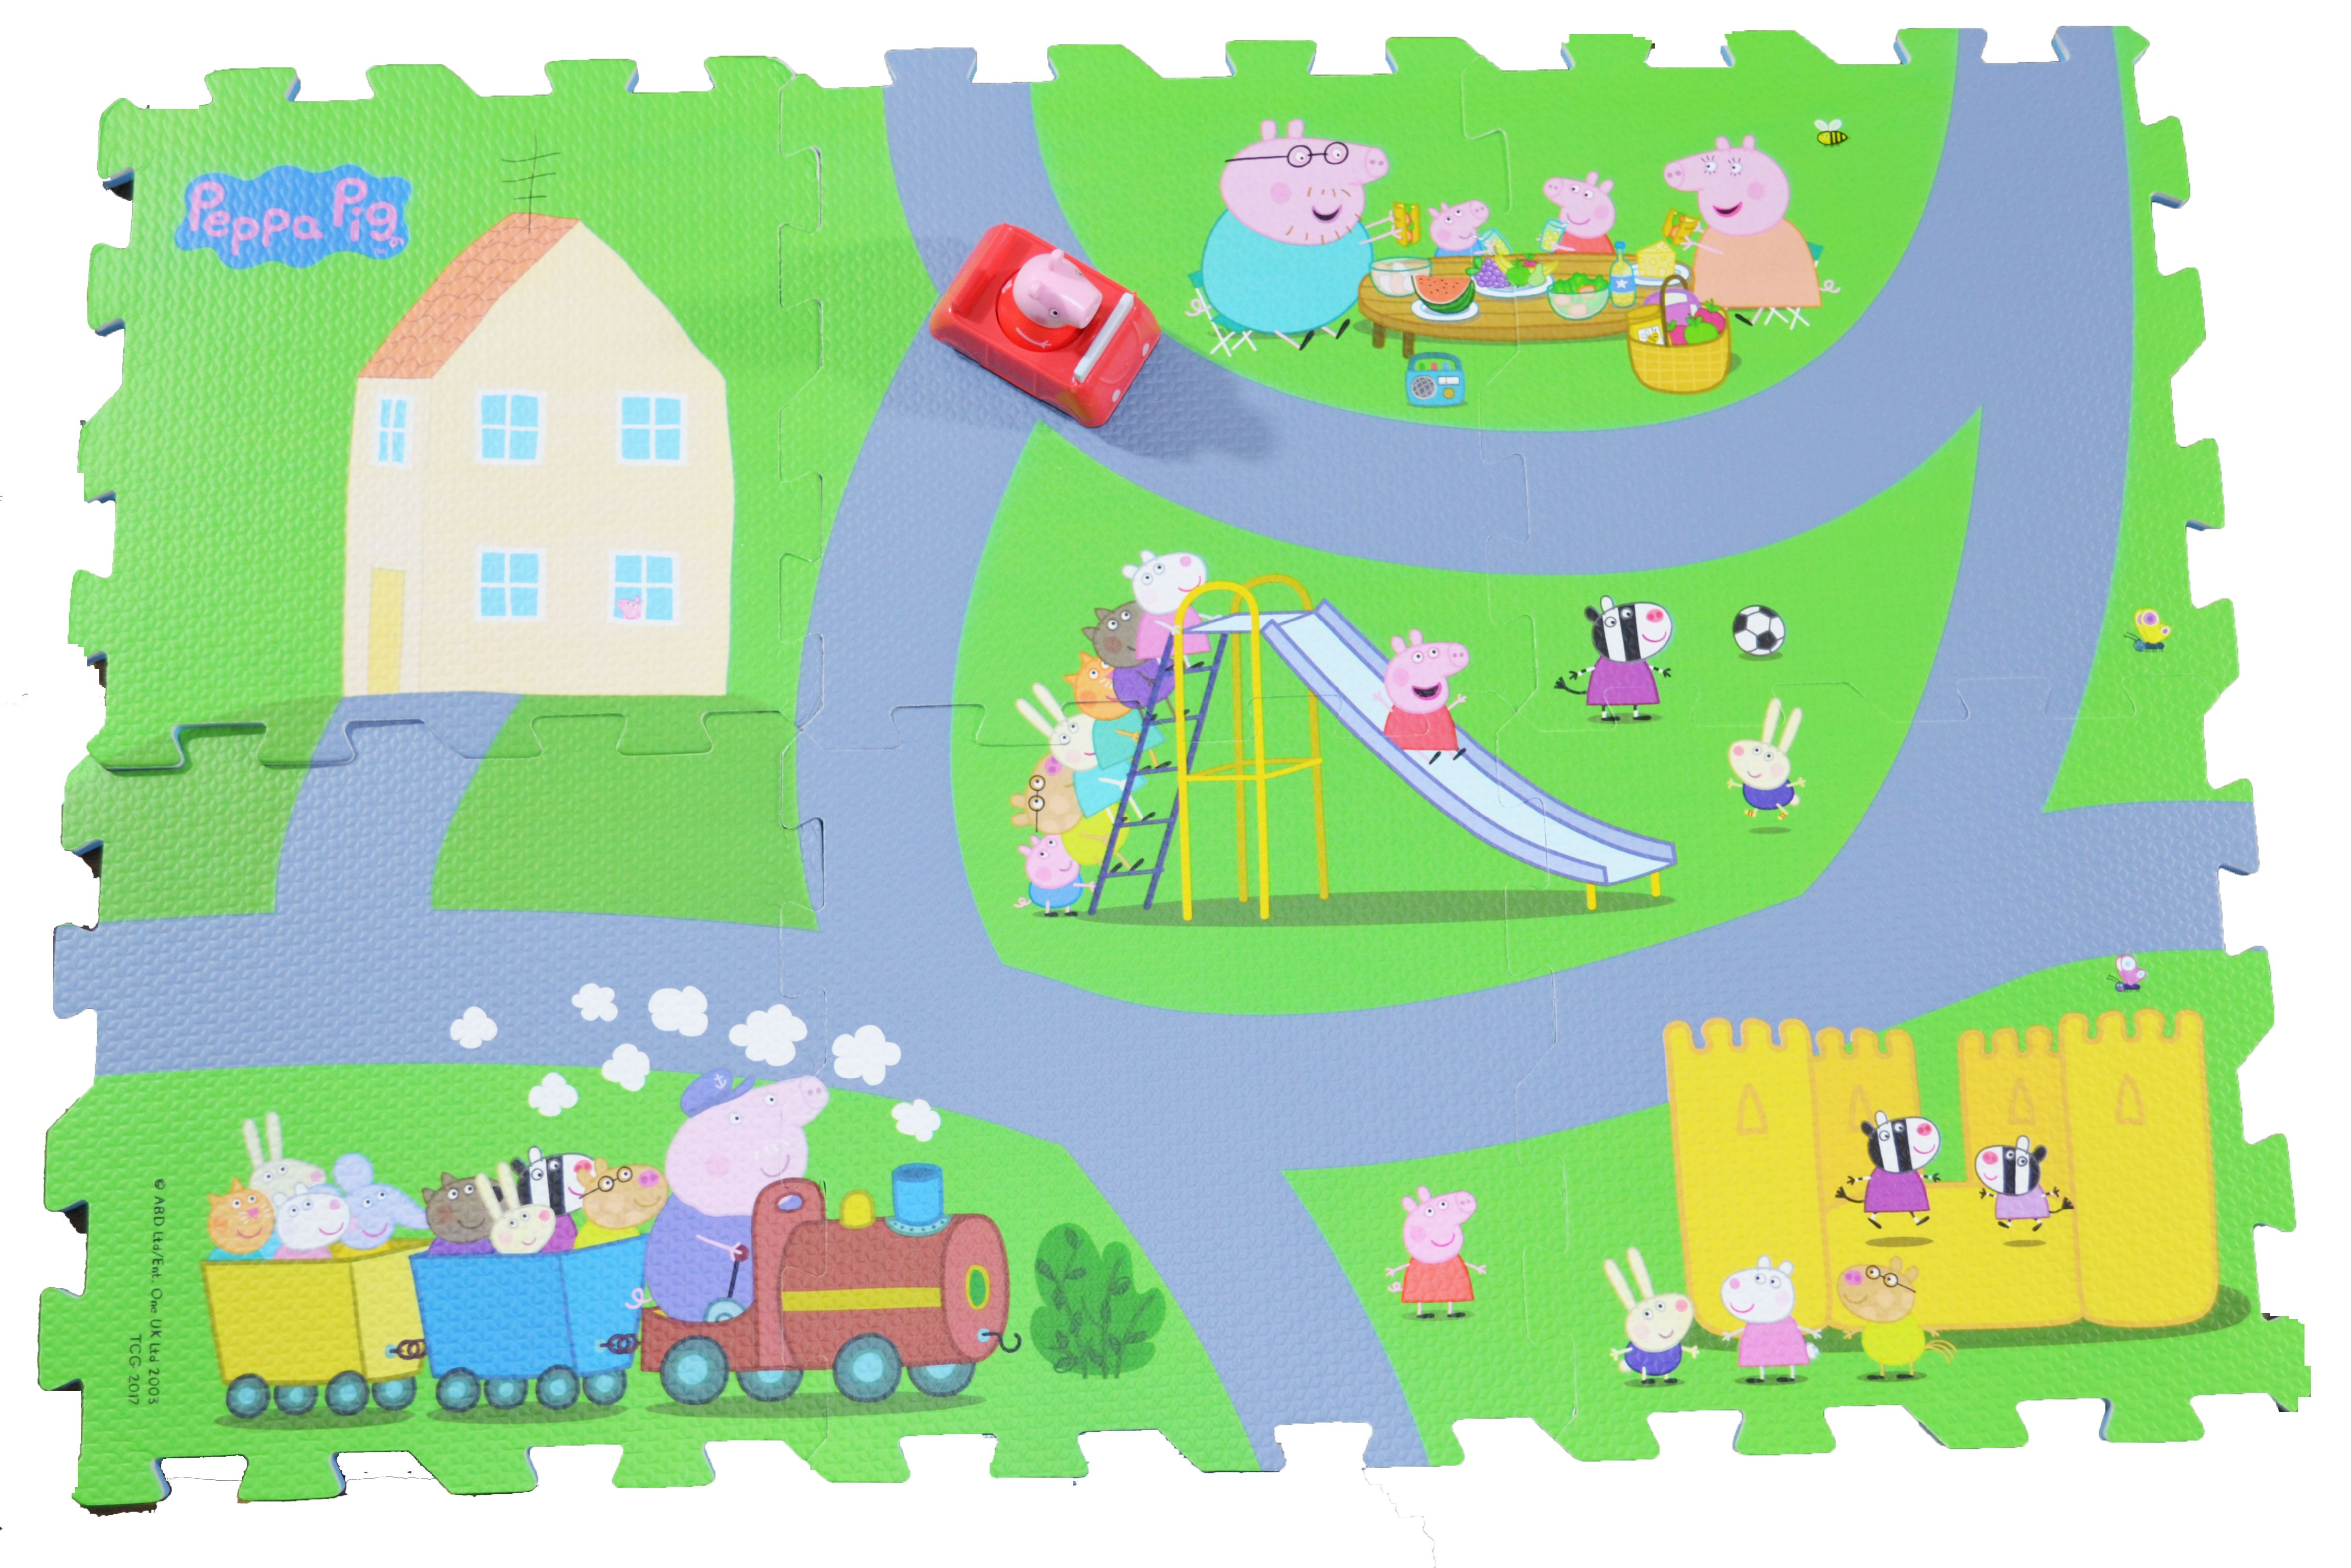 Nick Jr Peppa Pig 6 Tile Mega Mat Foam Puzzle with 1 Peppa Pig Toy Car by